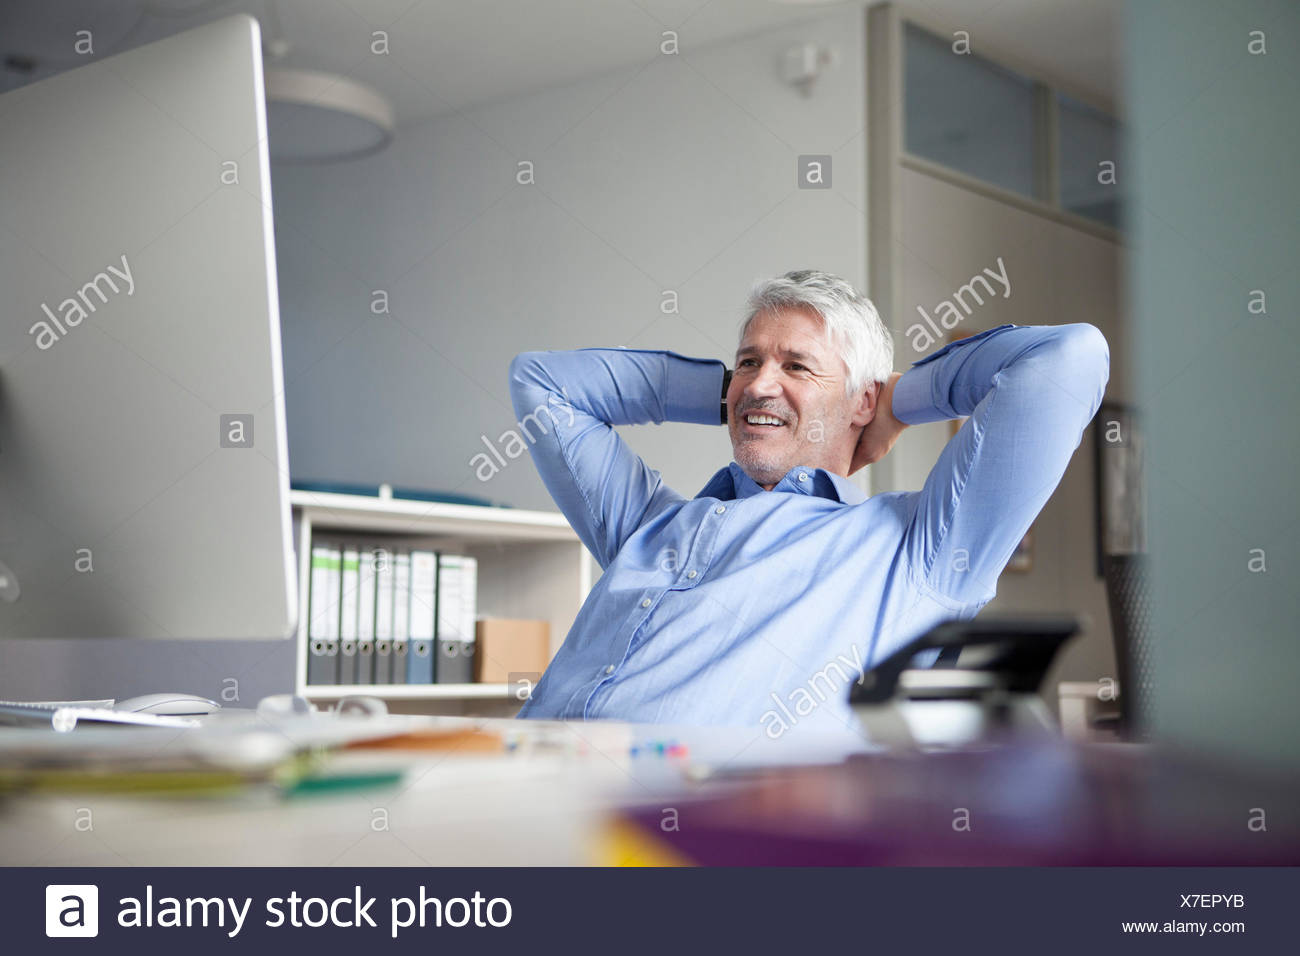 Businessman sitting at desk, hands behind head - Stock Image